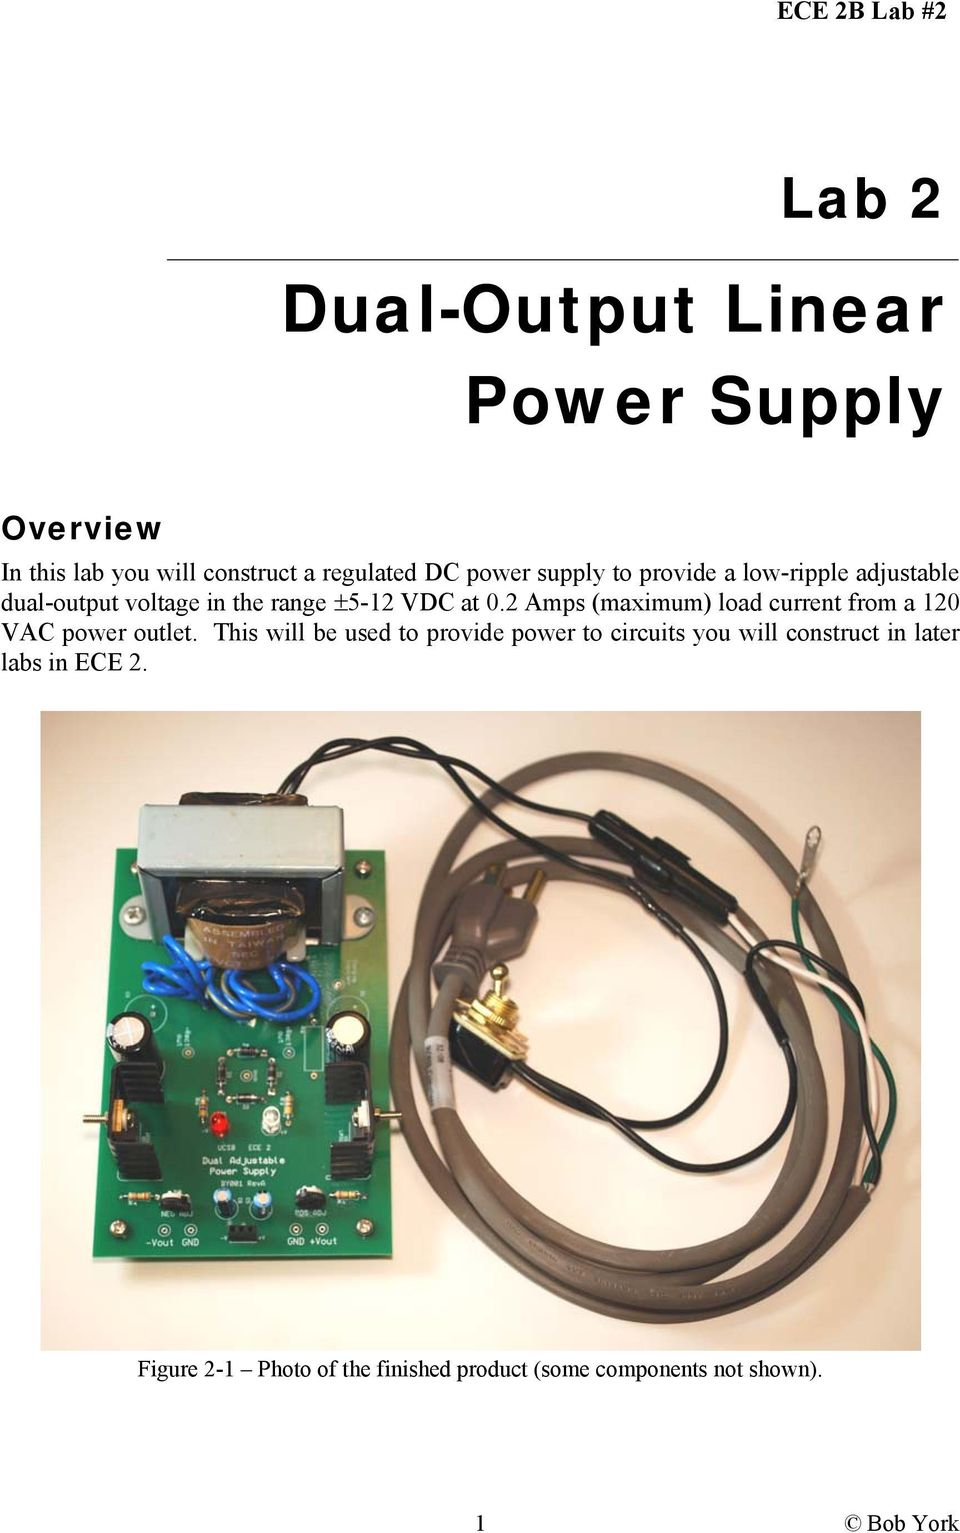 Dual Output Linear Power Supply Pdf Adjustable 12 30v 5a Using Lm338 2 Amps Maximum Load Current From A 120 Vac Outlet